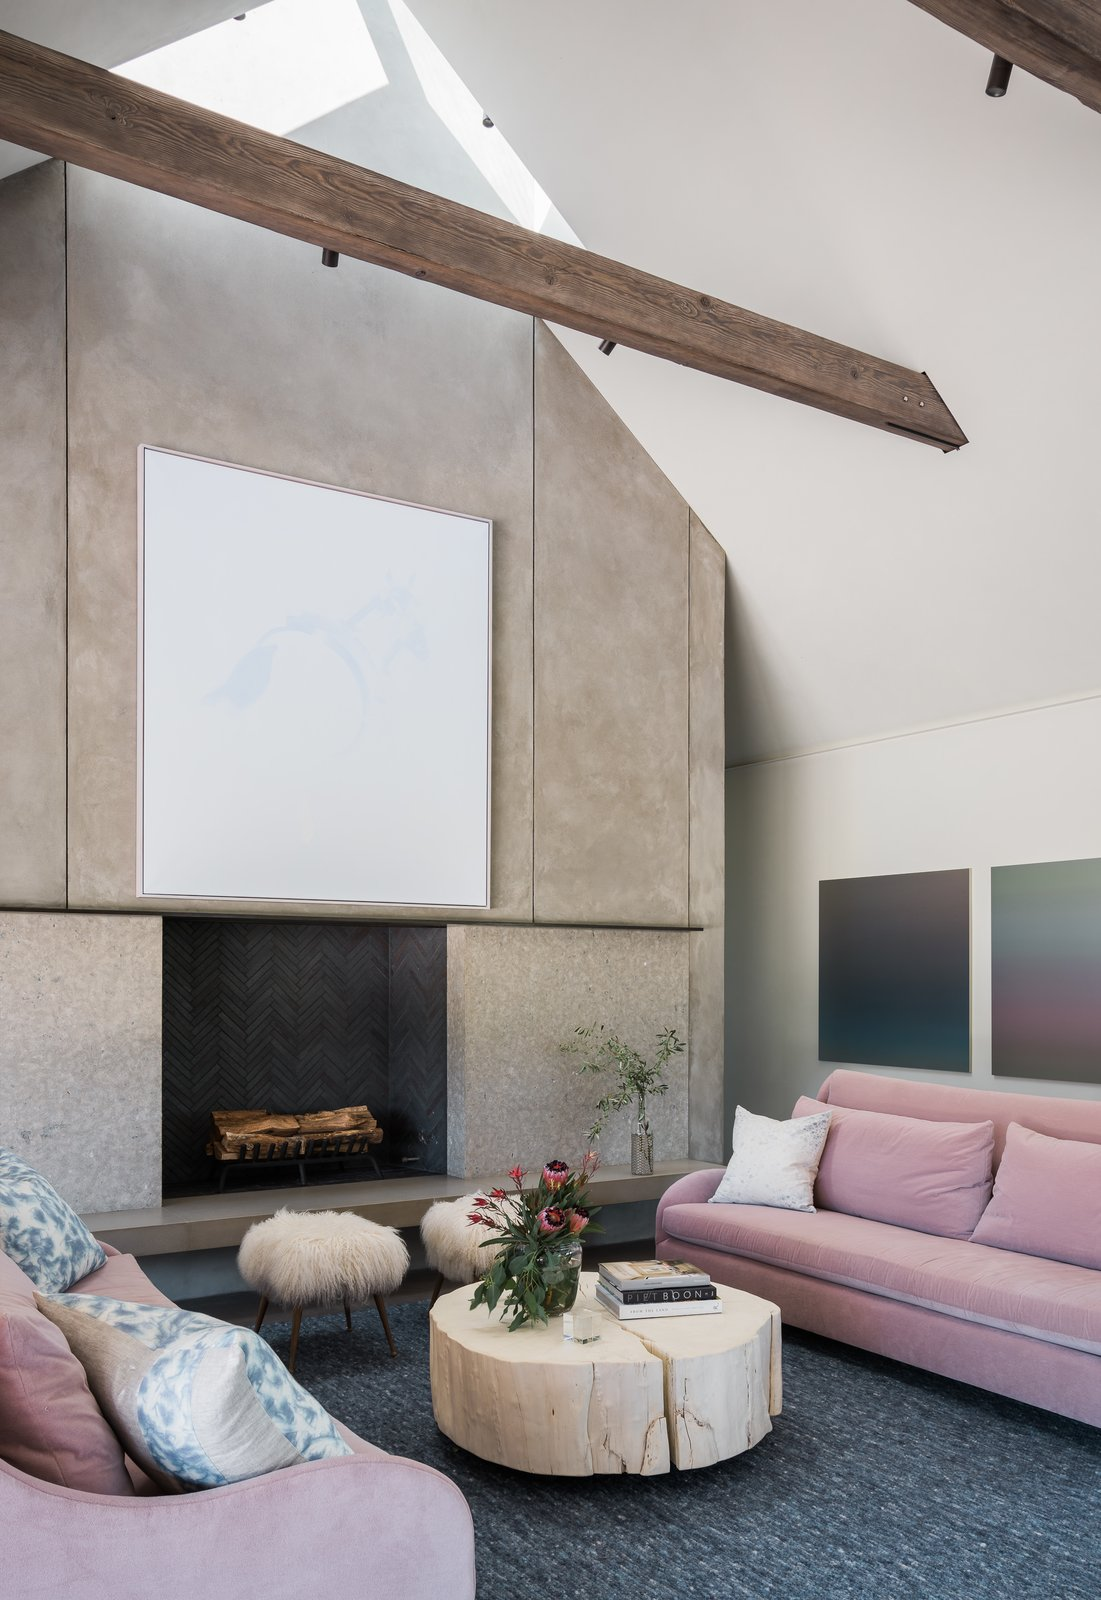 Living, Wood Burning, Coffee Tables, Concrete, Sofa, Rug, Standard Layout, Chair, Accent, Bench, Ottomans, and Ceiling Rich, barn-like wooden beams punctuate the sleek, airy interiors, adding texture and character. Pops of color from the bright pink sofas, combined with the hand-knotted rugs, add a sense of luxury to the polished concrete floors.  Best Living Standard Layout Bench Accent Photos from A Barn-Inspired, Modern Retreat Is Knitted Into Napa Valley